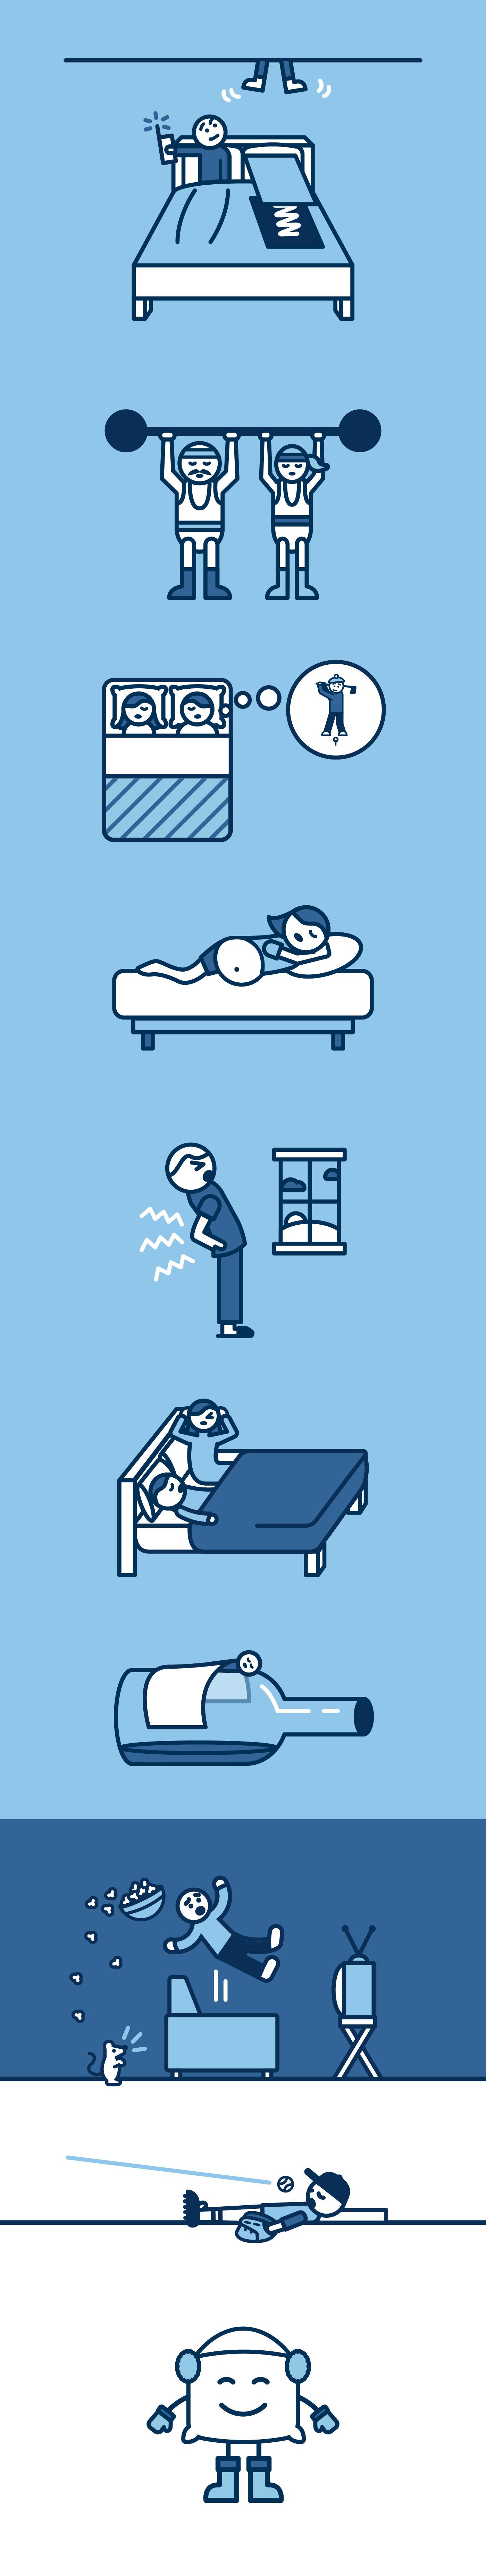 Sleep-Number-Illustrations-style-1.png